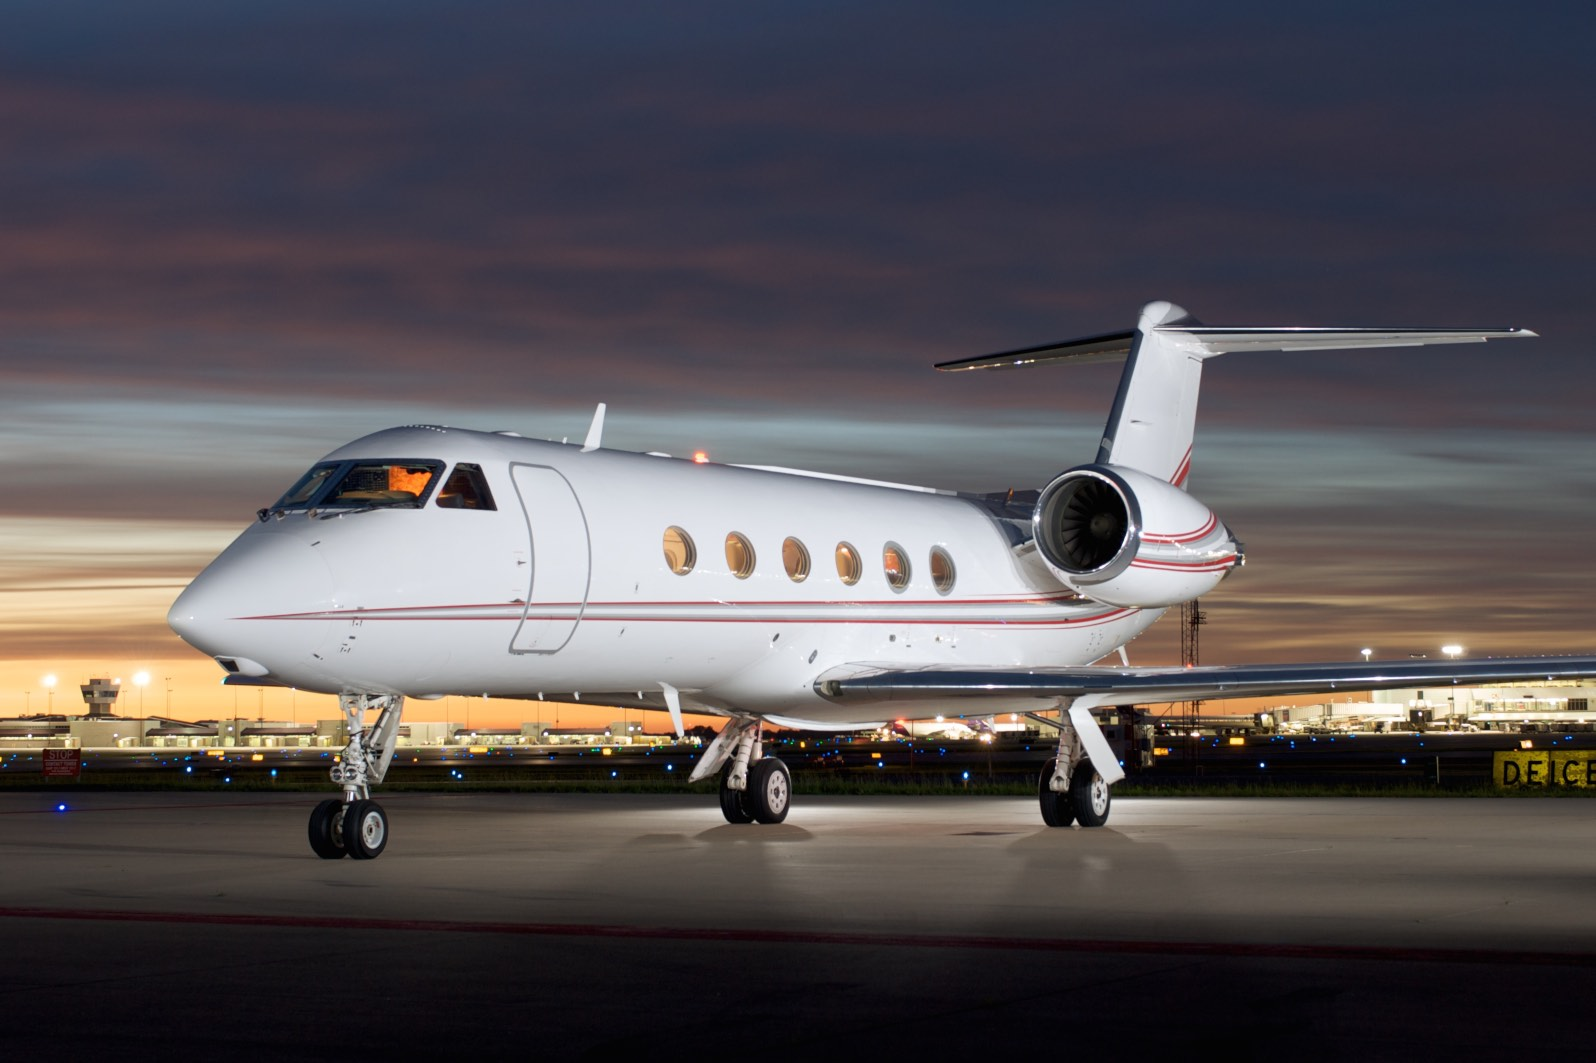 Aircraft Listing - Gulfstream G300 listed for sale